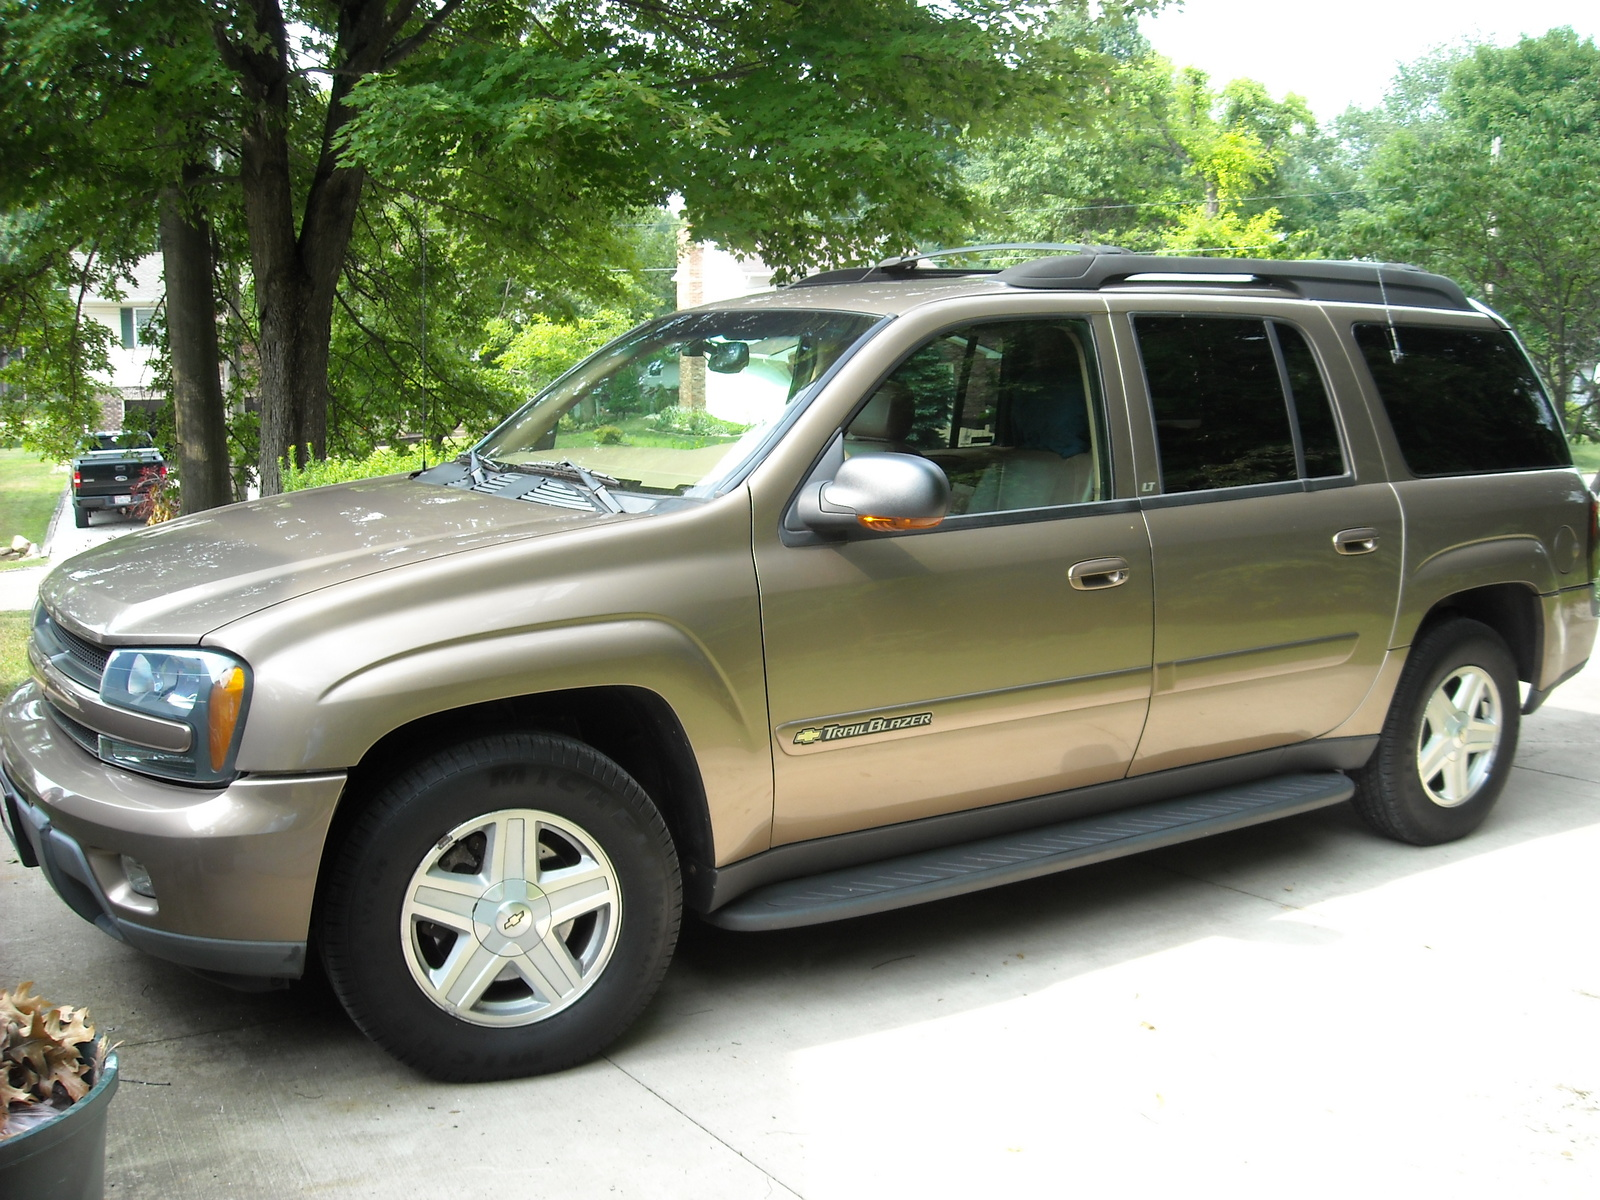 2002 Chevrolet TrailBlazer - Pictures - CarGurus